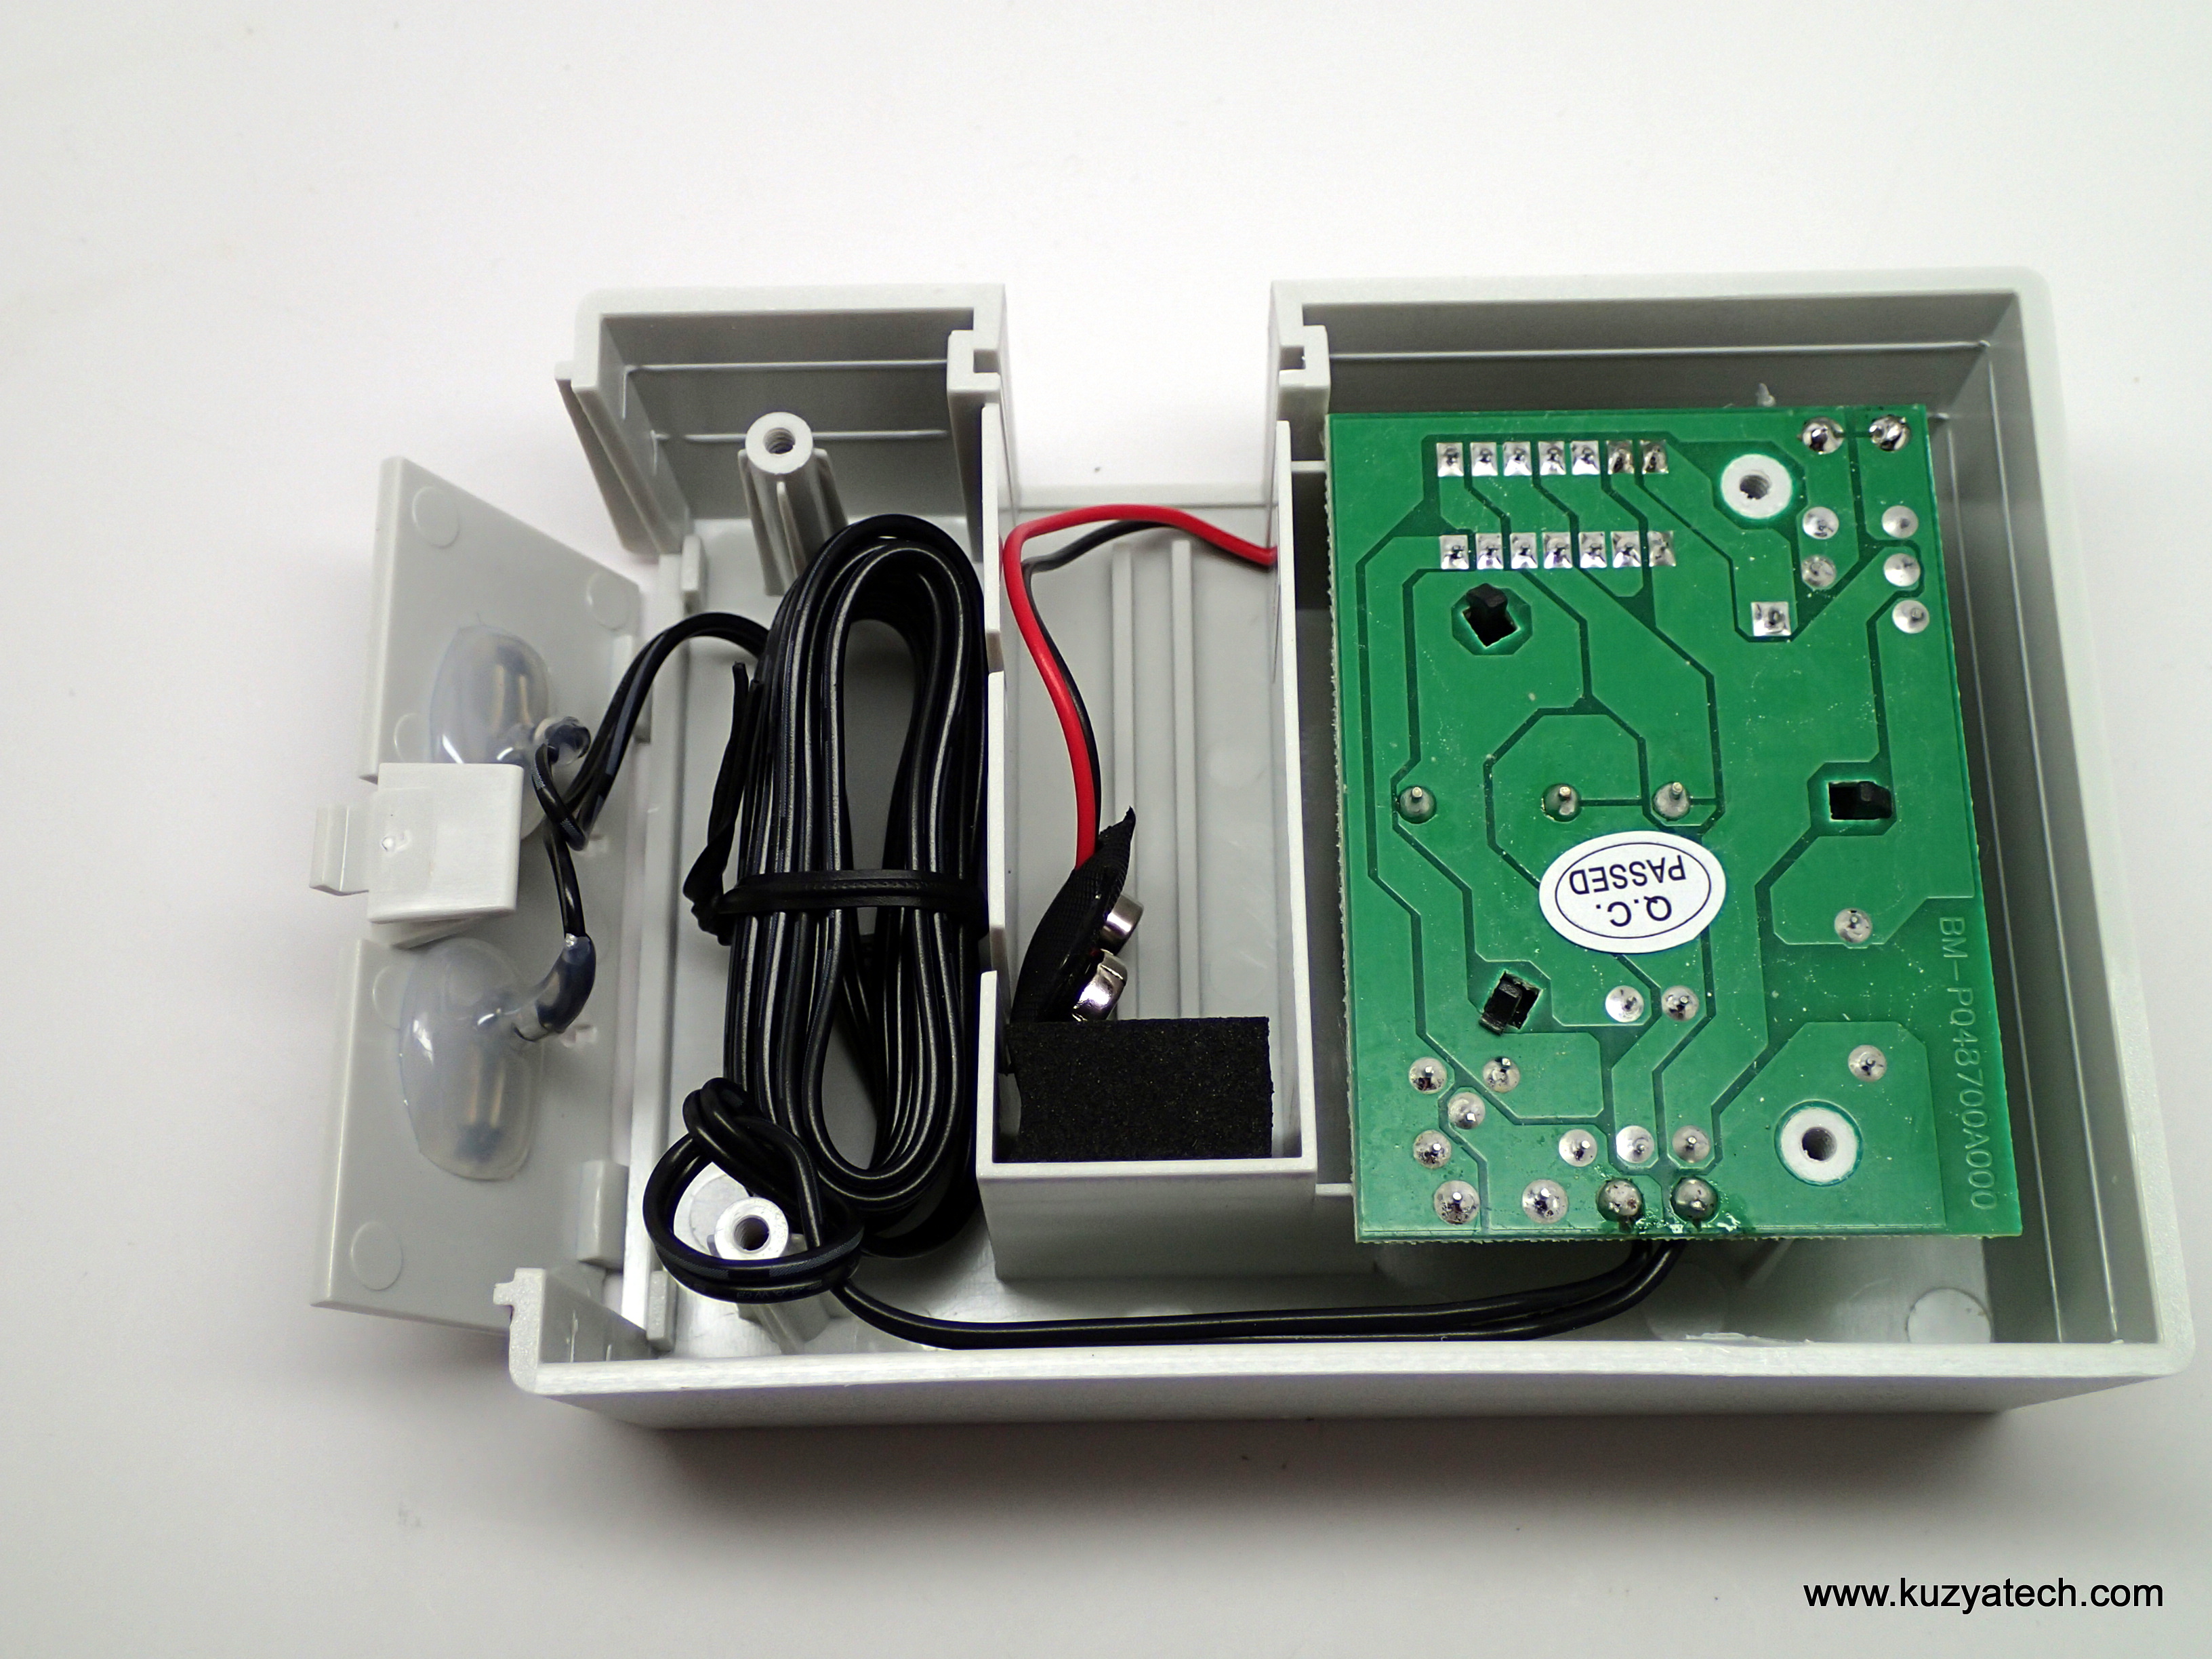 Rain Water Alarm Circuit Watchdog Teardown Kuzyatech Rear Cover Off